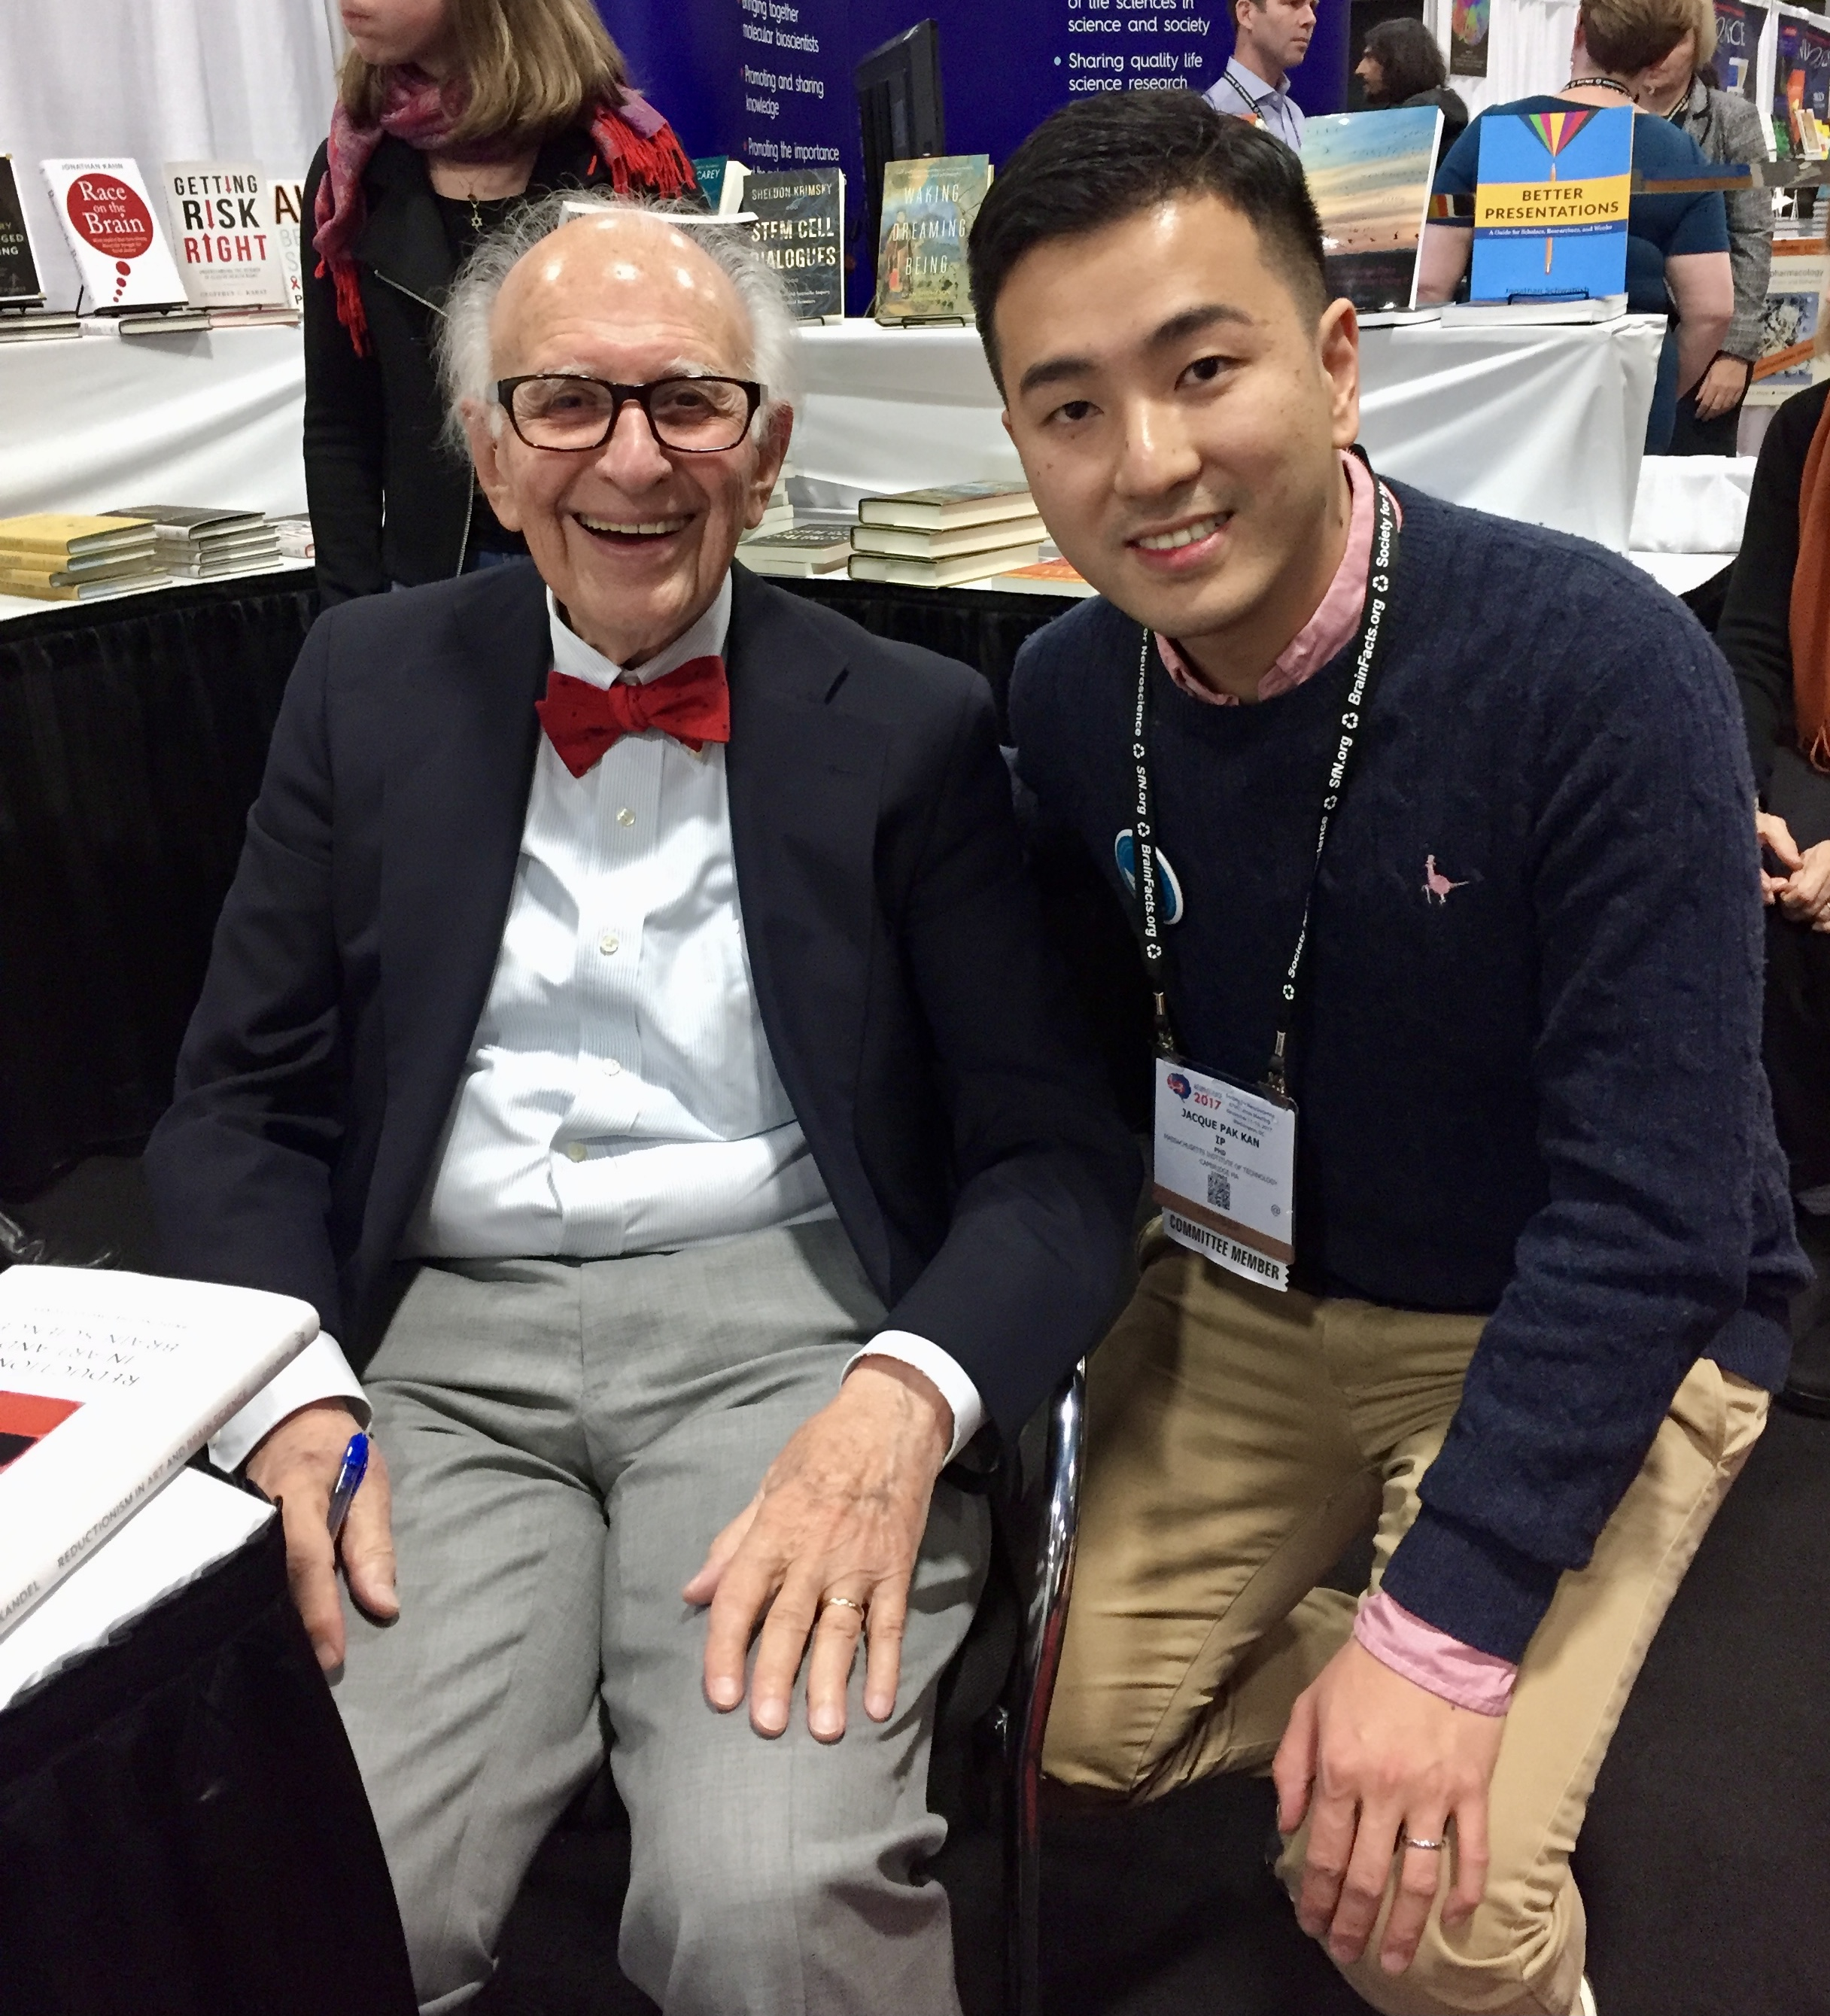 Prof Ip with Prof. Eric Kandel, Nobel Laureate and founder of the field of molecular neuroscience, at an annual neuroscience conference.